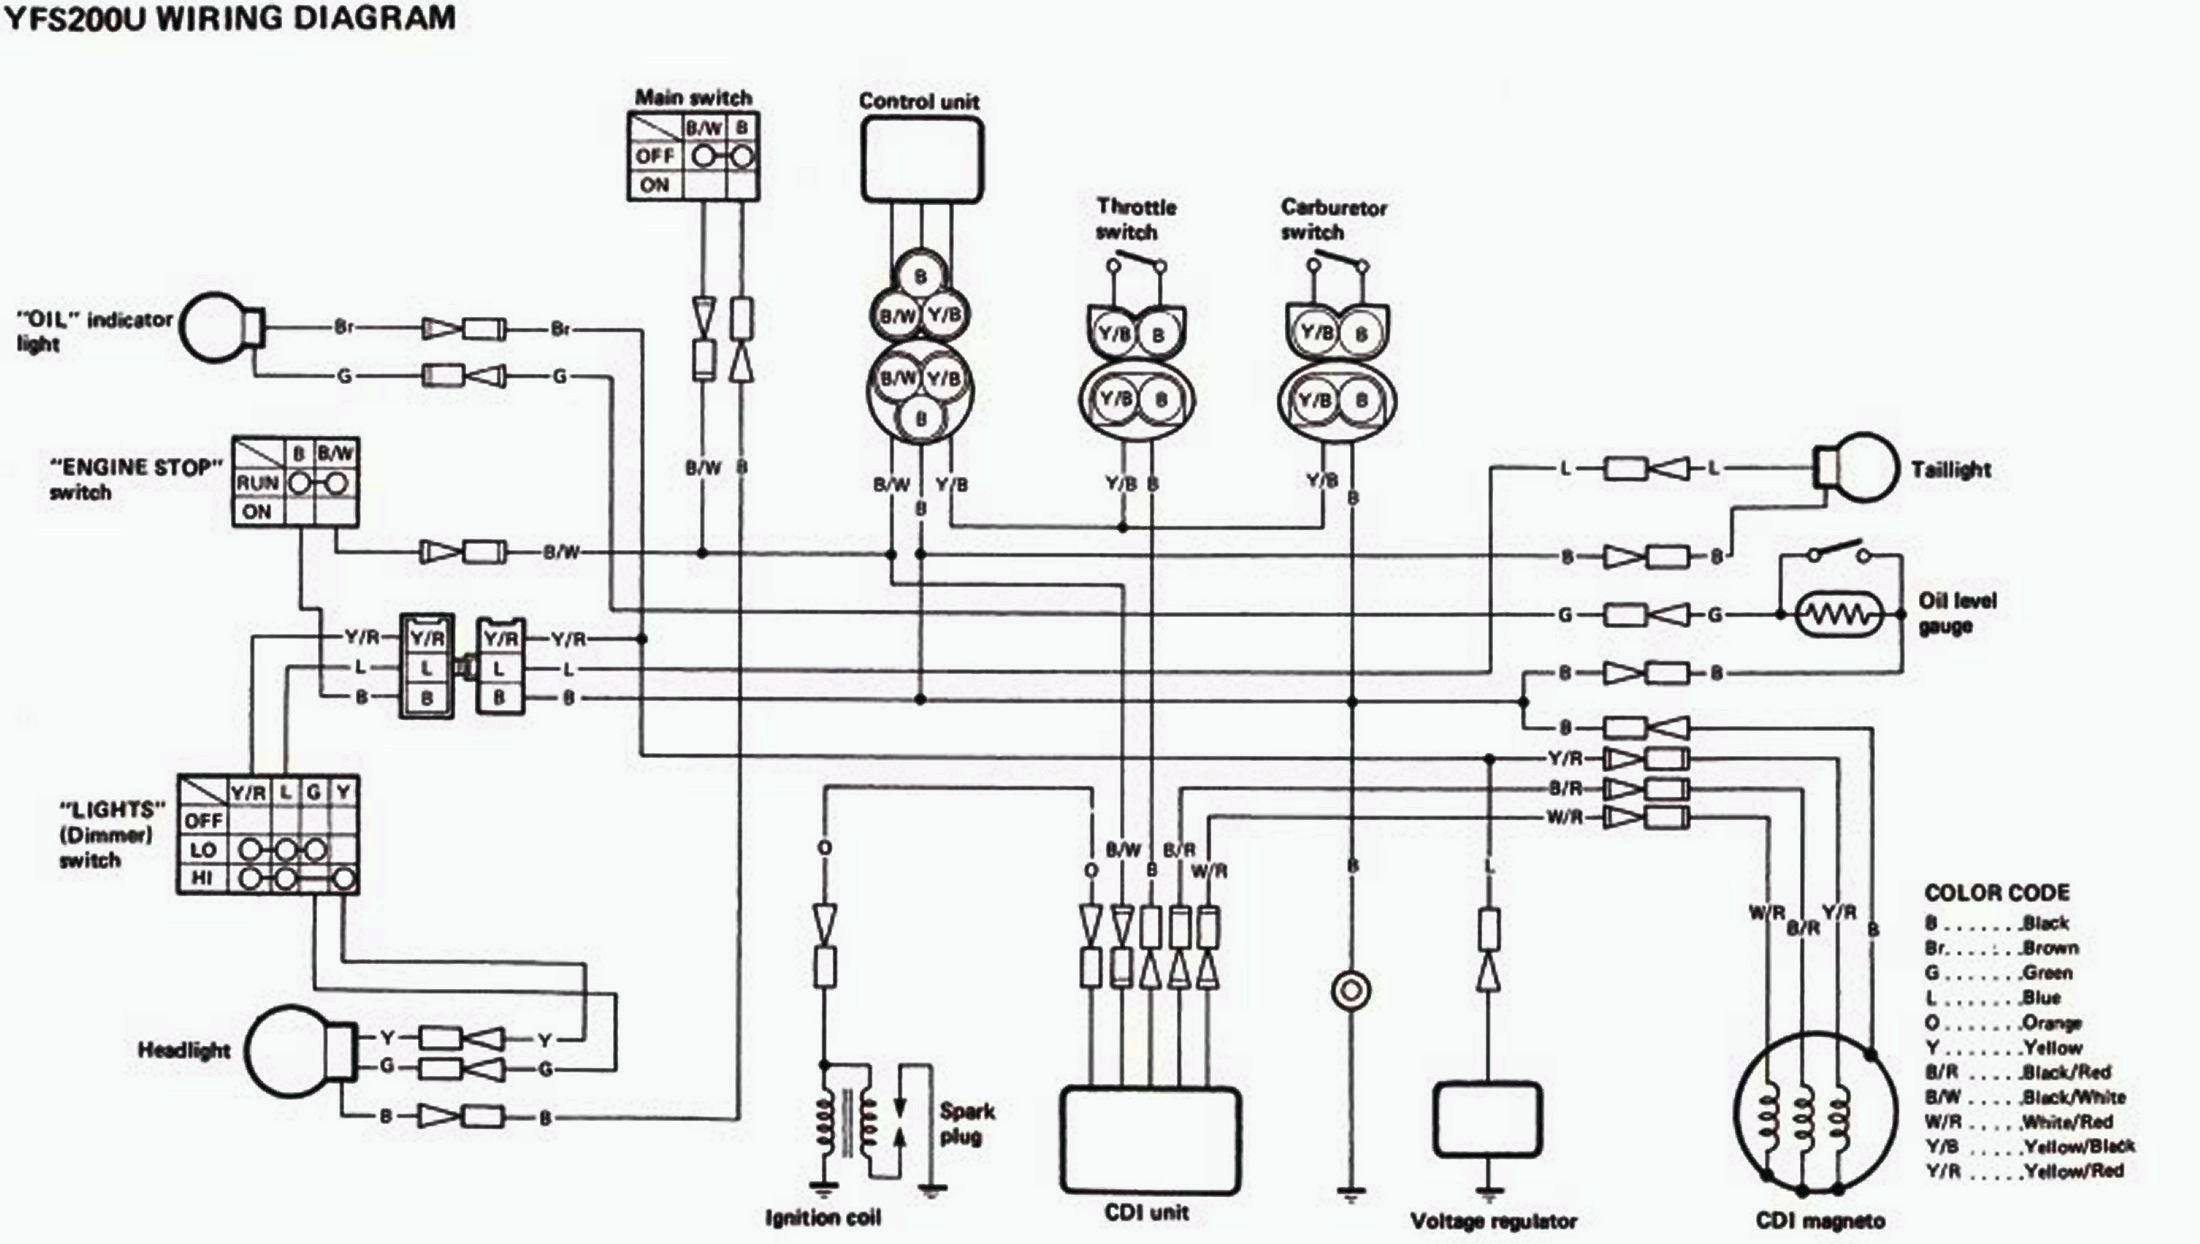 yamaha blaster wire harness diagram